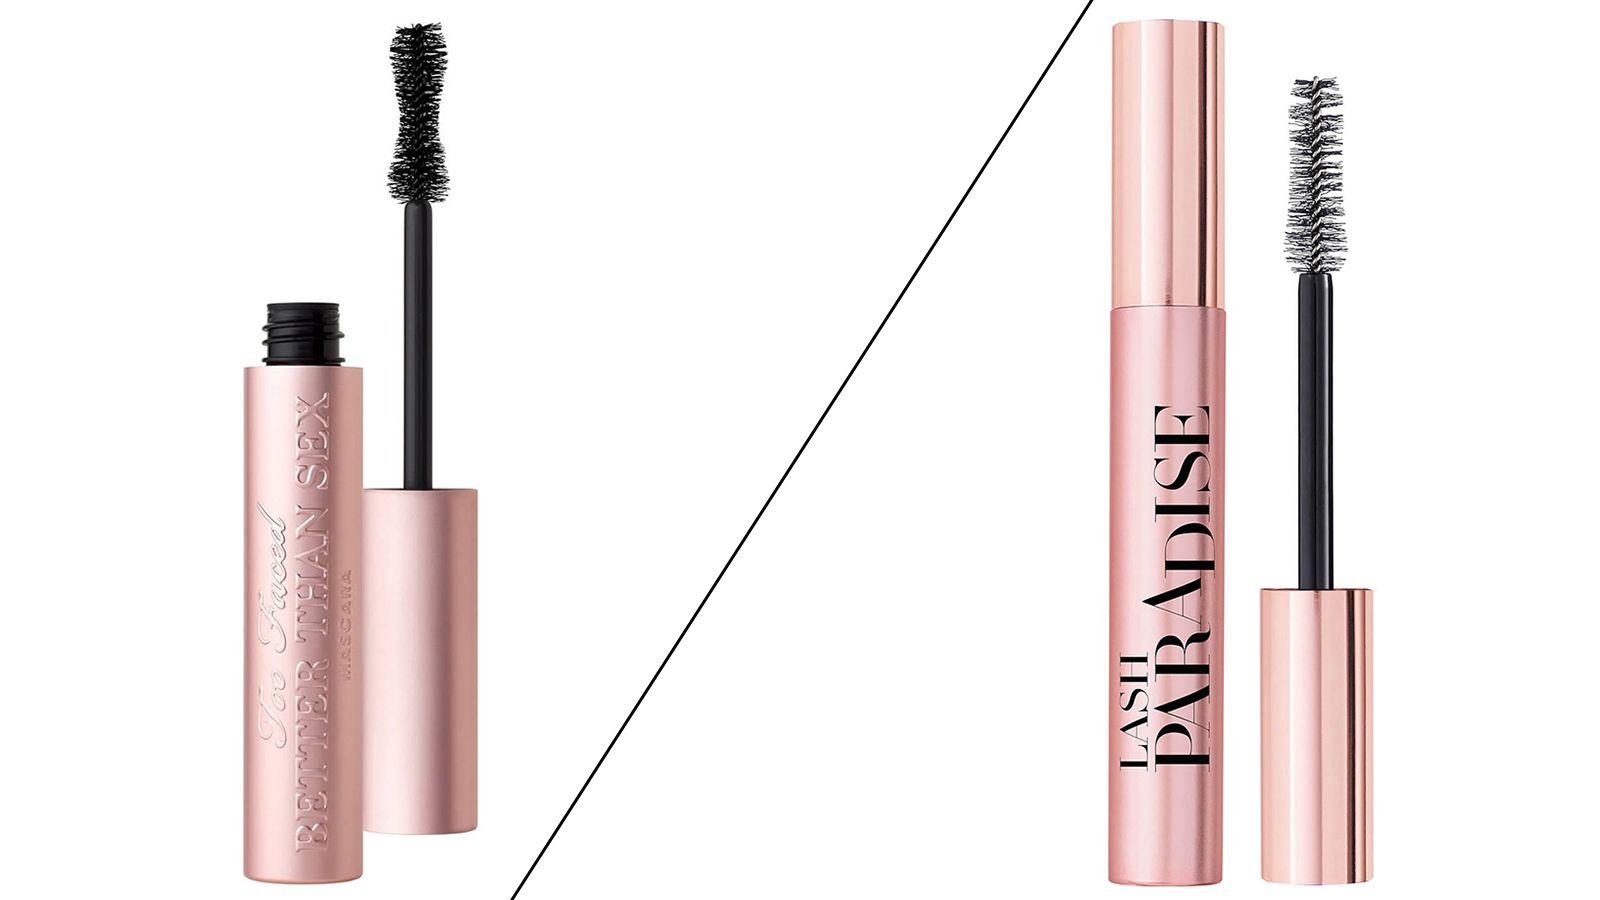 Too Faced Better Than Sex vs L'Oréal Paris Lash Paradise: does budget or blowout take the mascara crown?